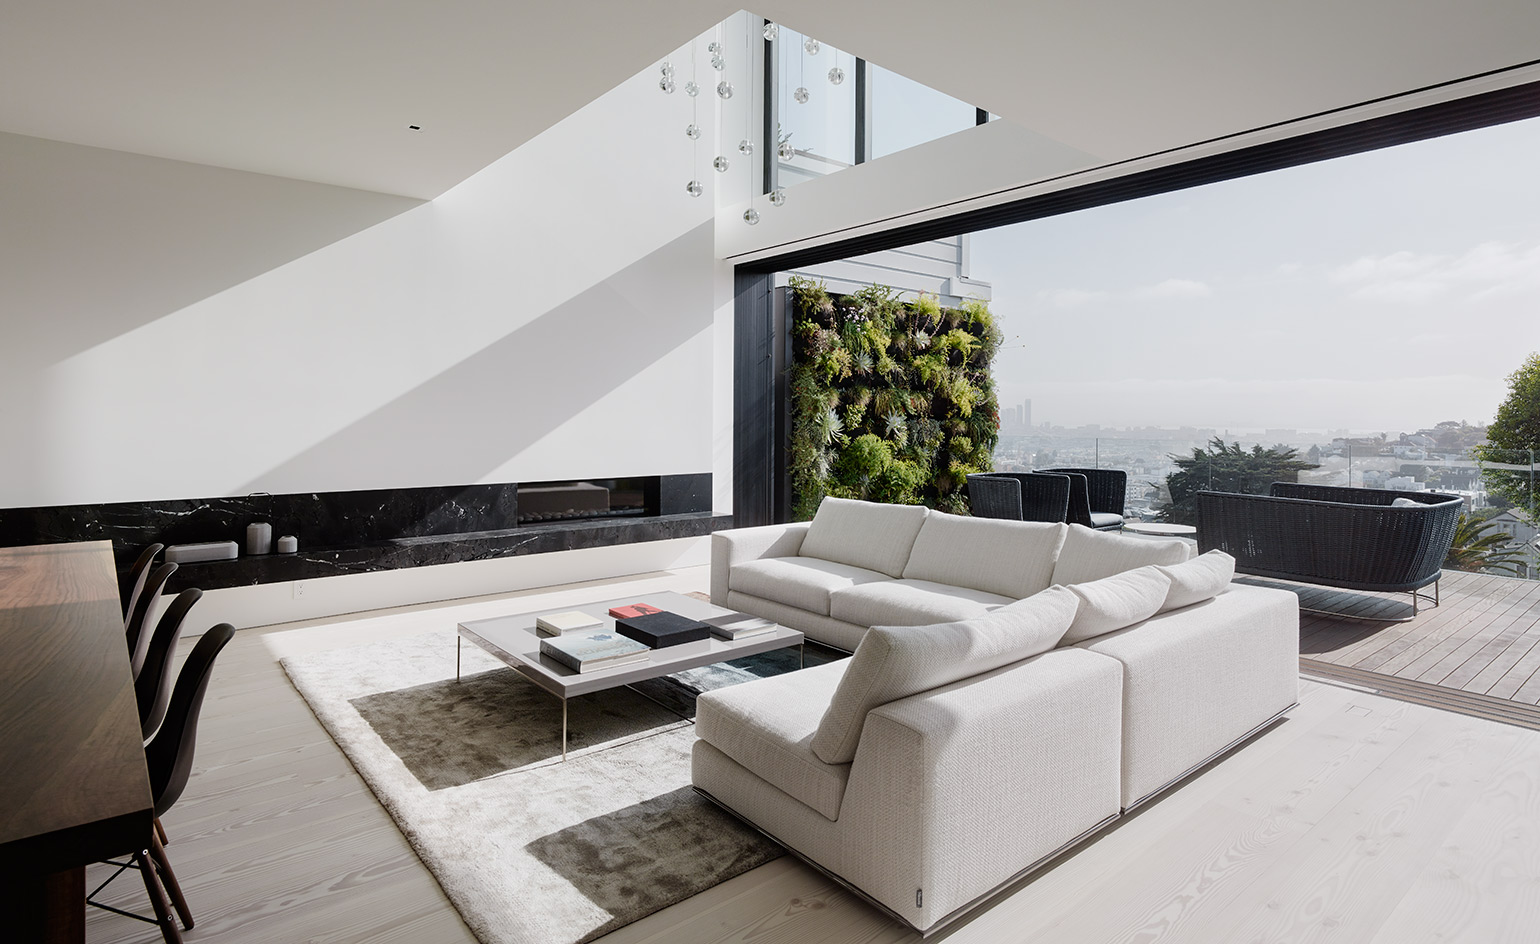 This all white house is an amazing minimalist space with laconic interiors and a luxurious touch